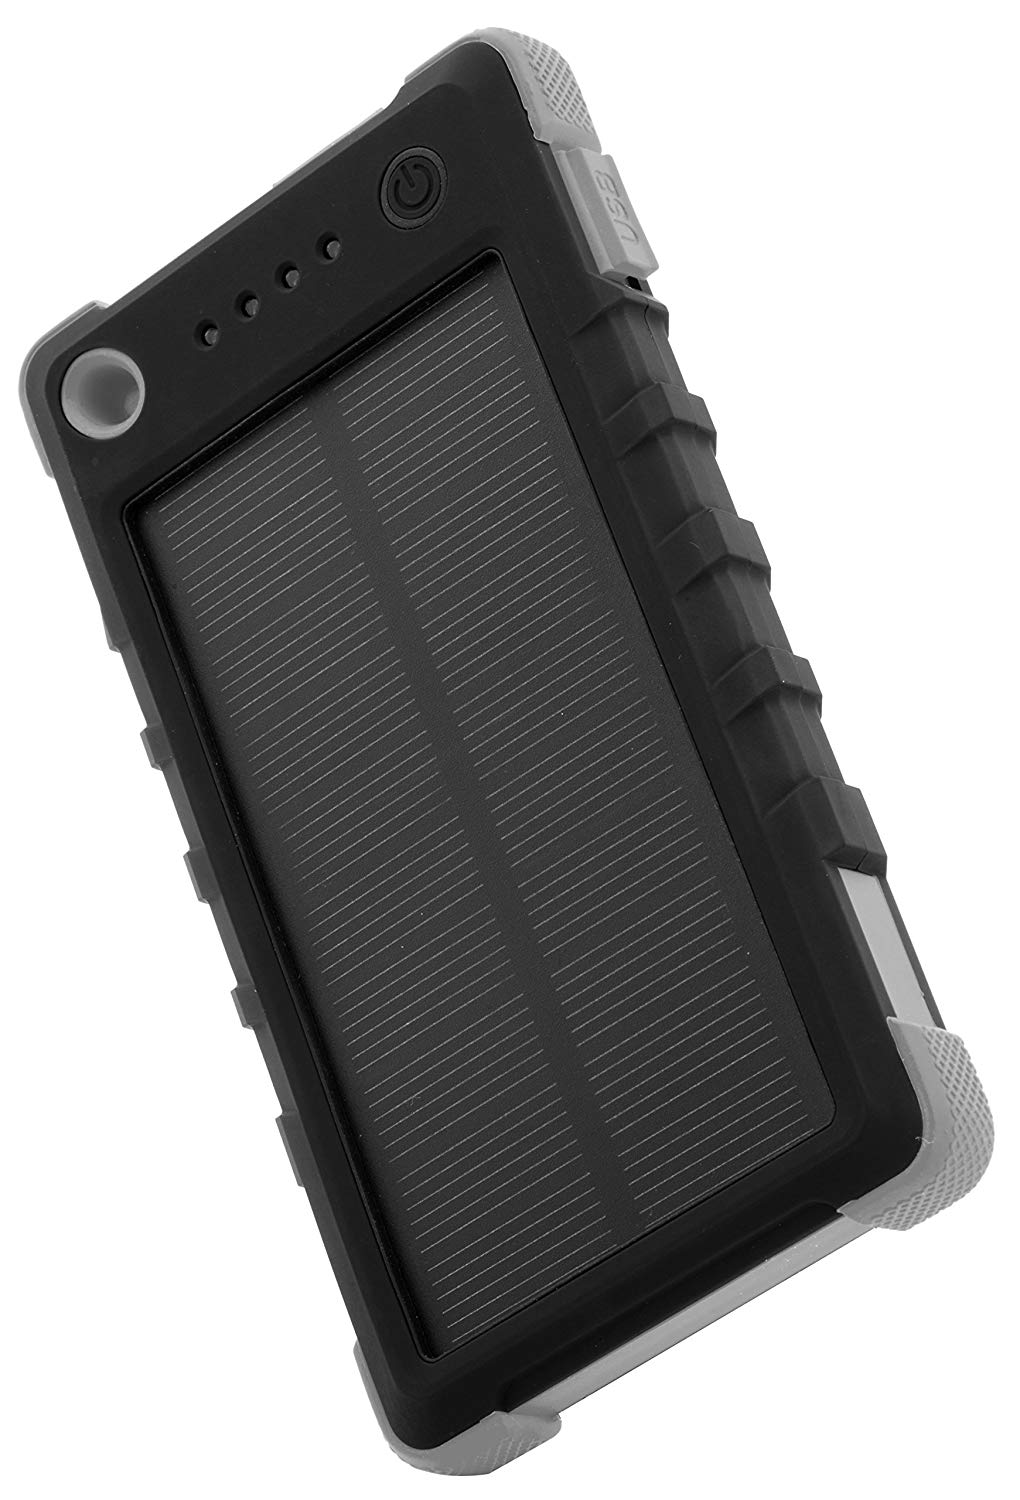 MyMe Solar Back-up Battery-Built in Lantern- Superior Build up- Solar Panel- Shock Resistant- Waterproof- Handy to Carry- Biking- Camping- Hiking